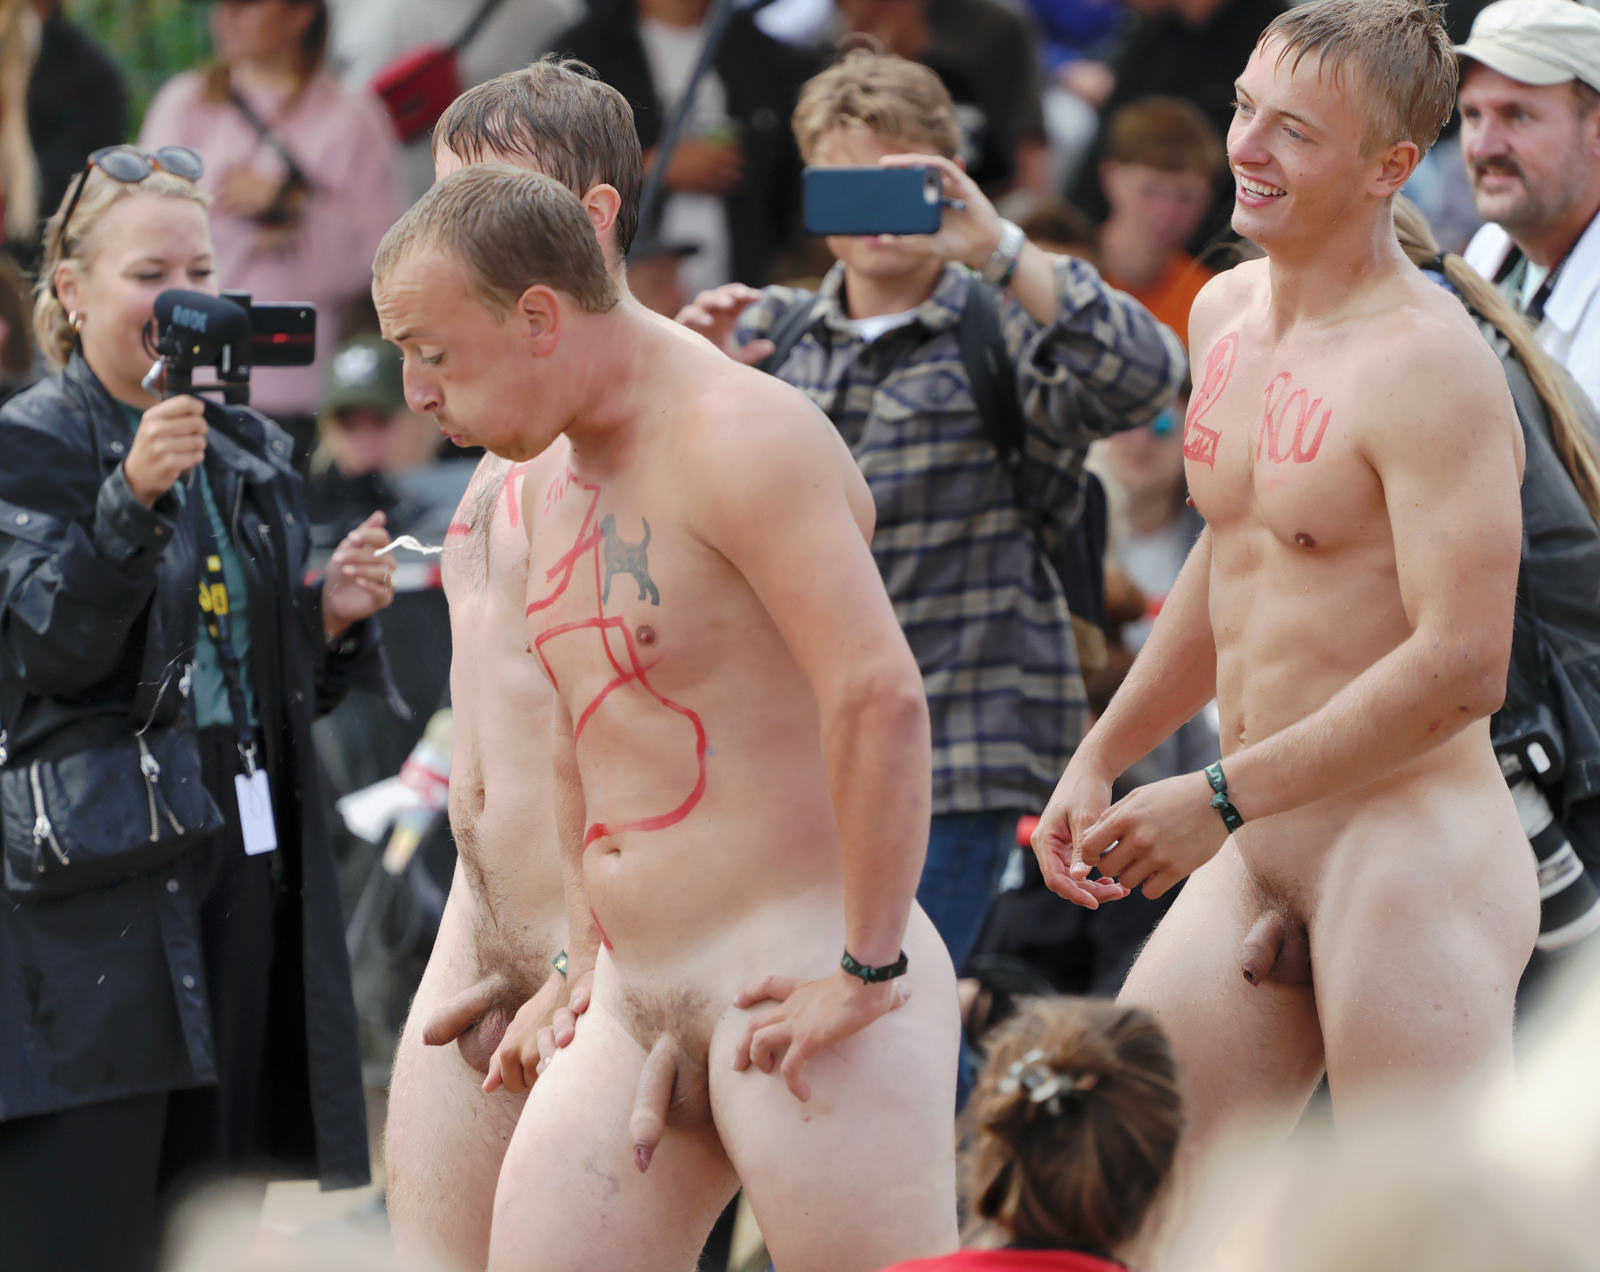 hot guys with uncut cocks naked in public